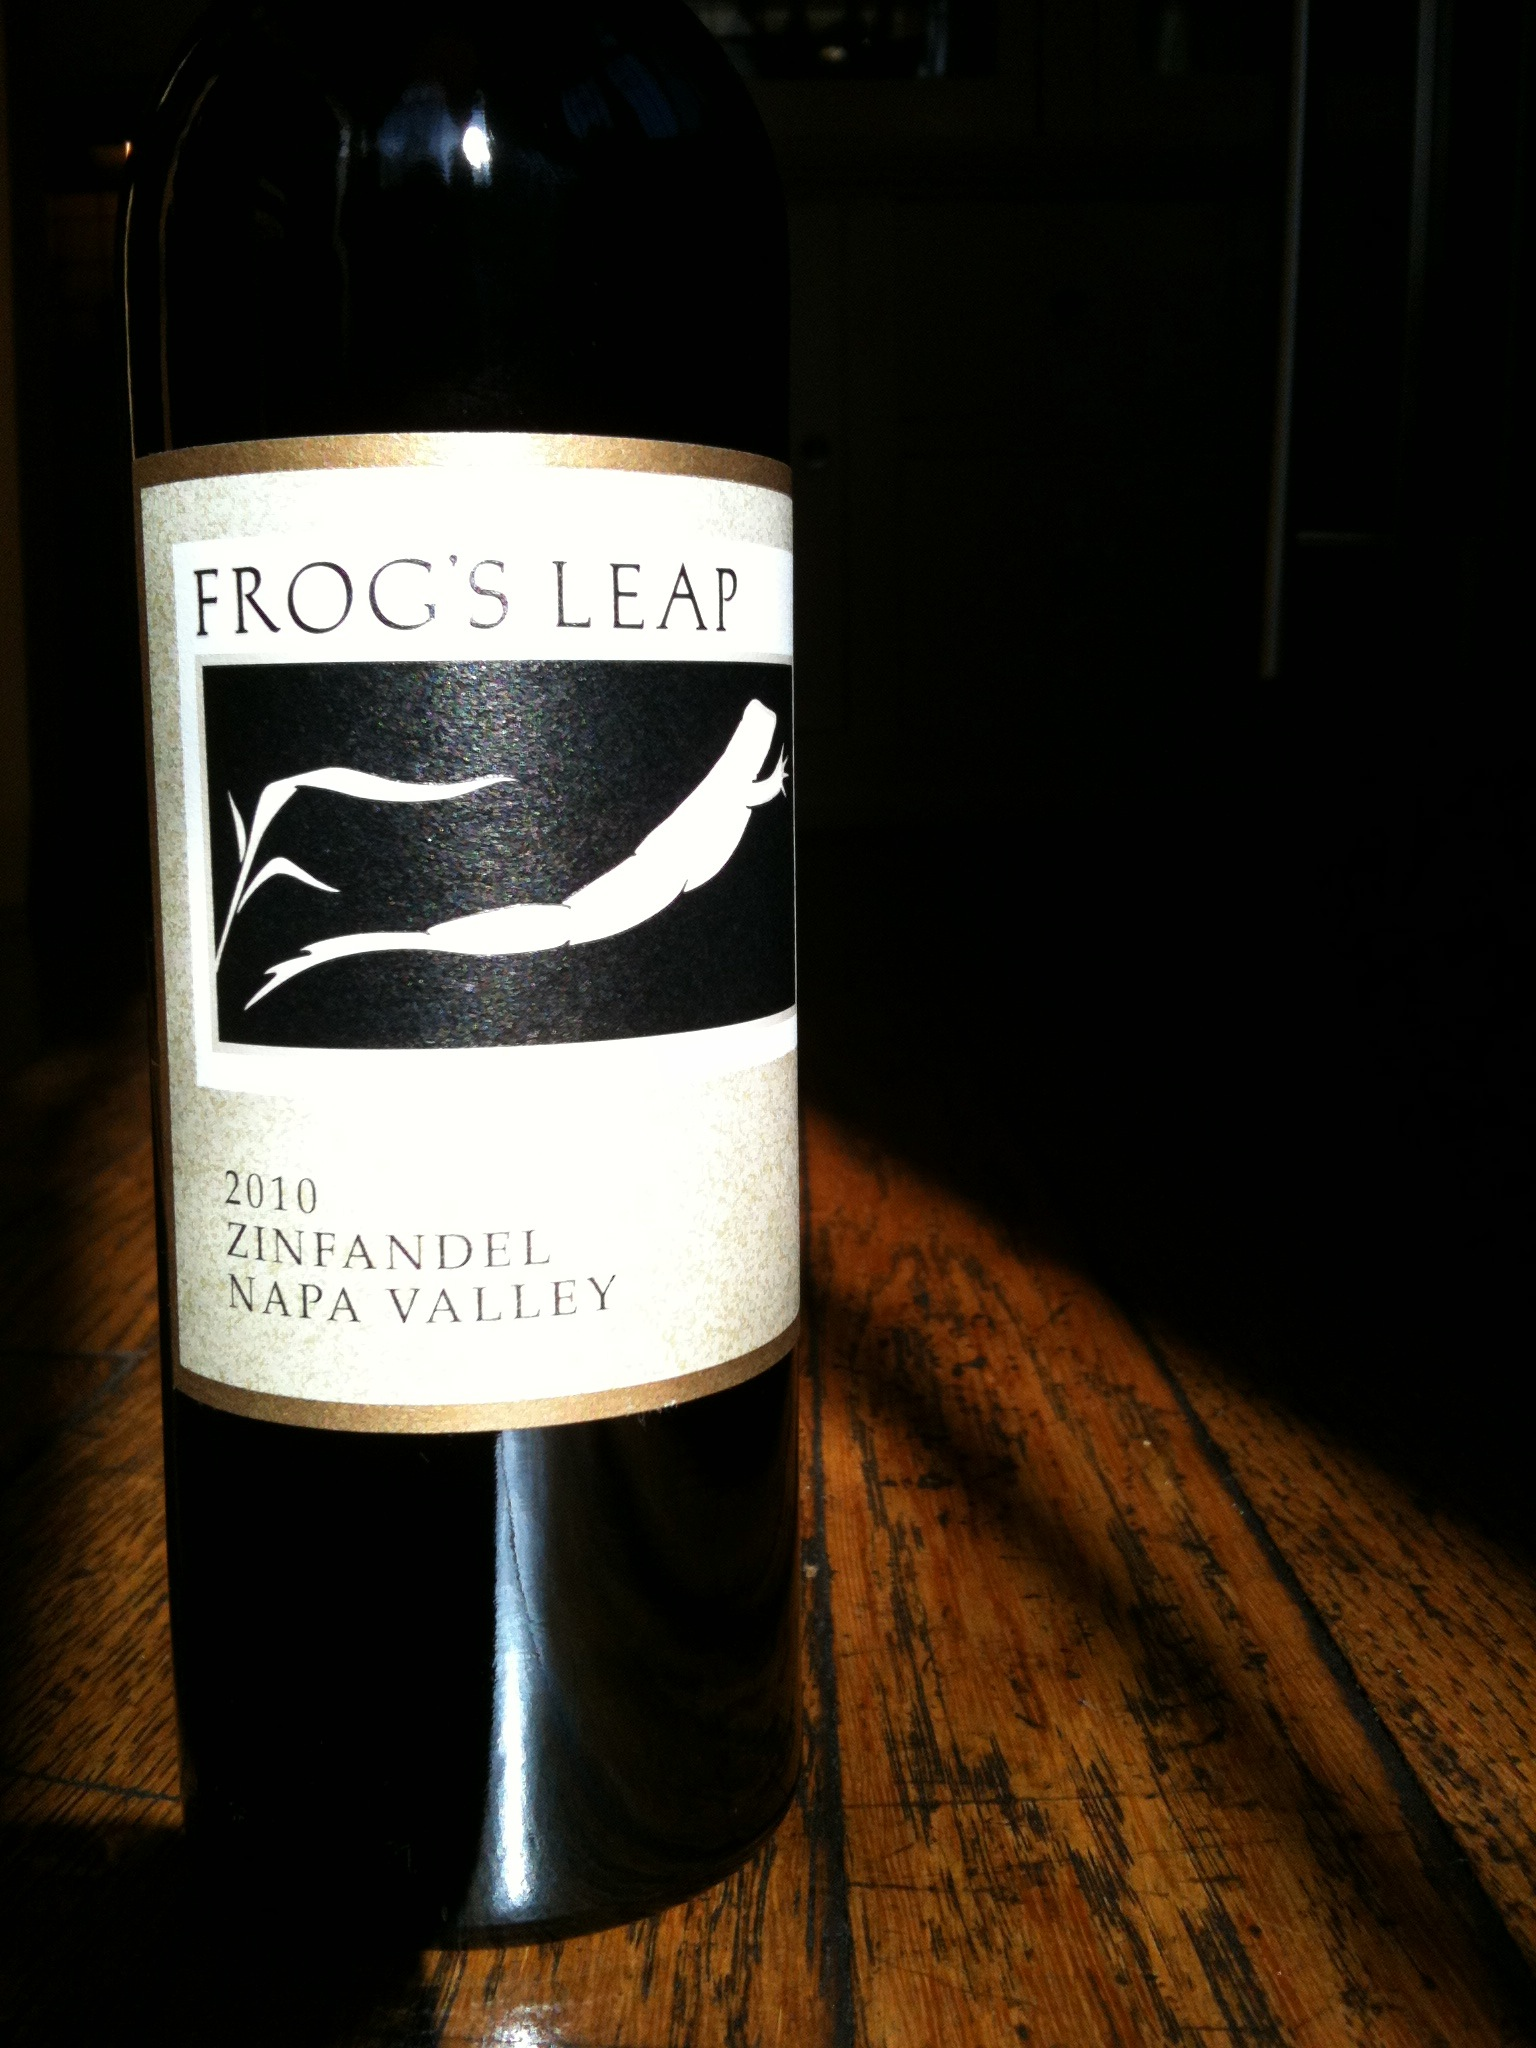 Frogs Leap 2010 Zinfandel Napa Valley - Wine Review